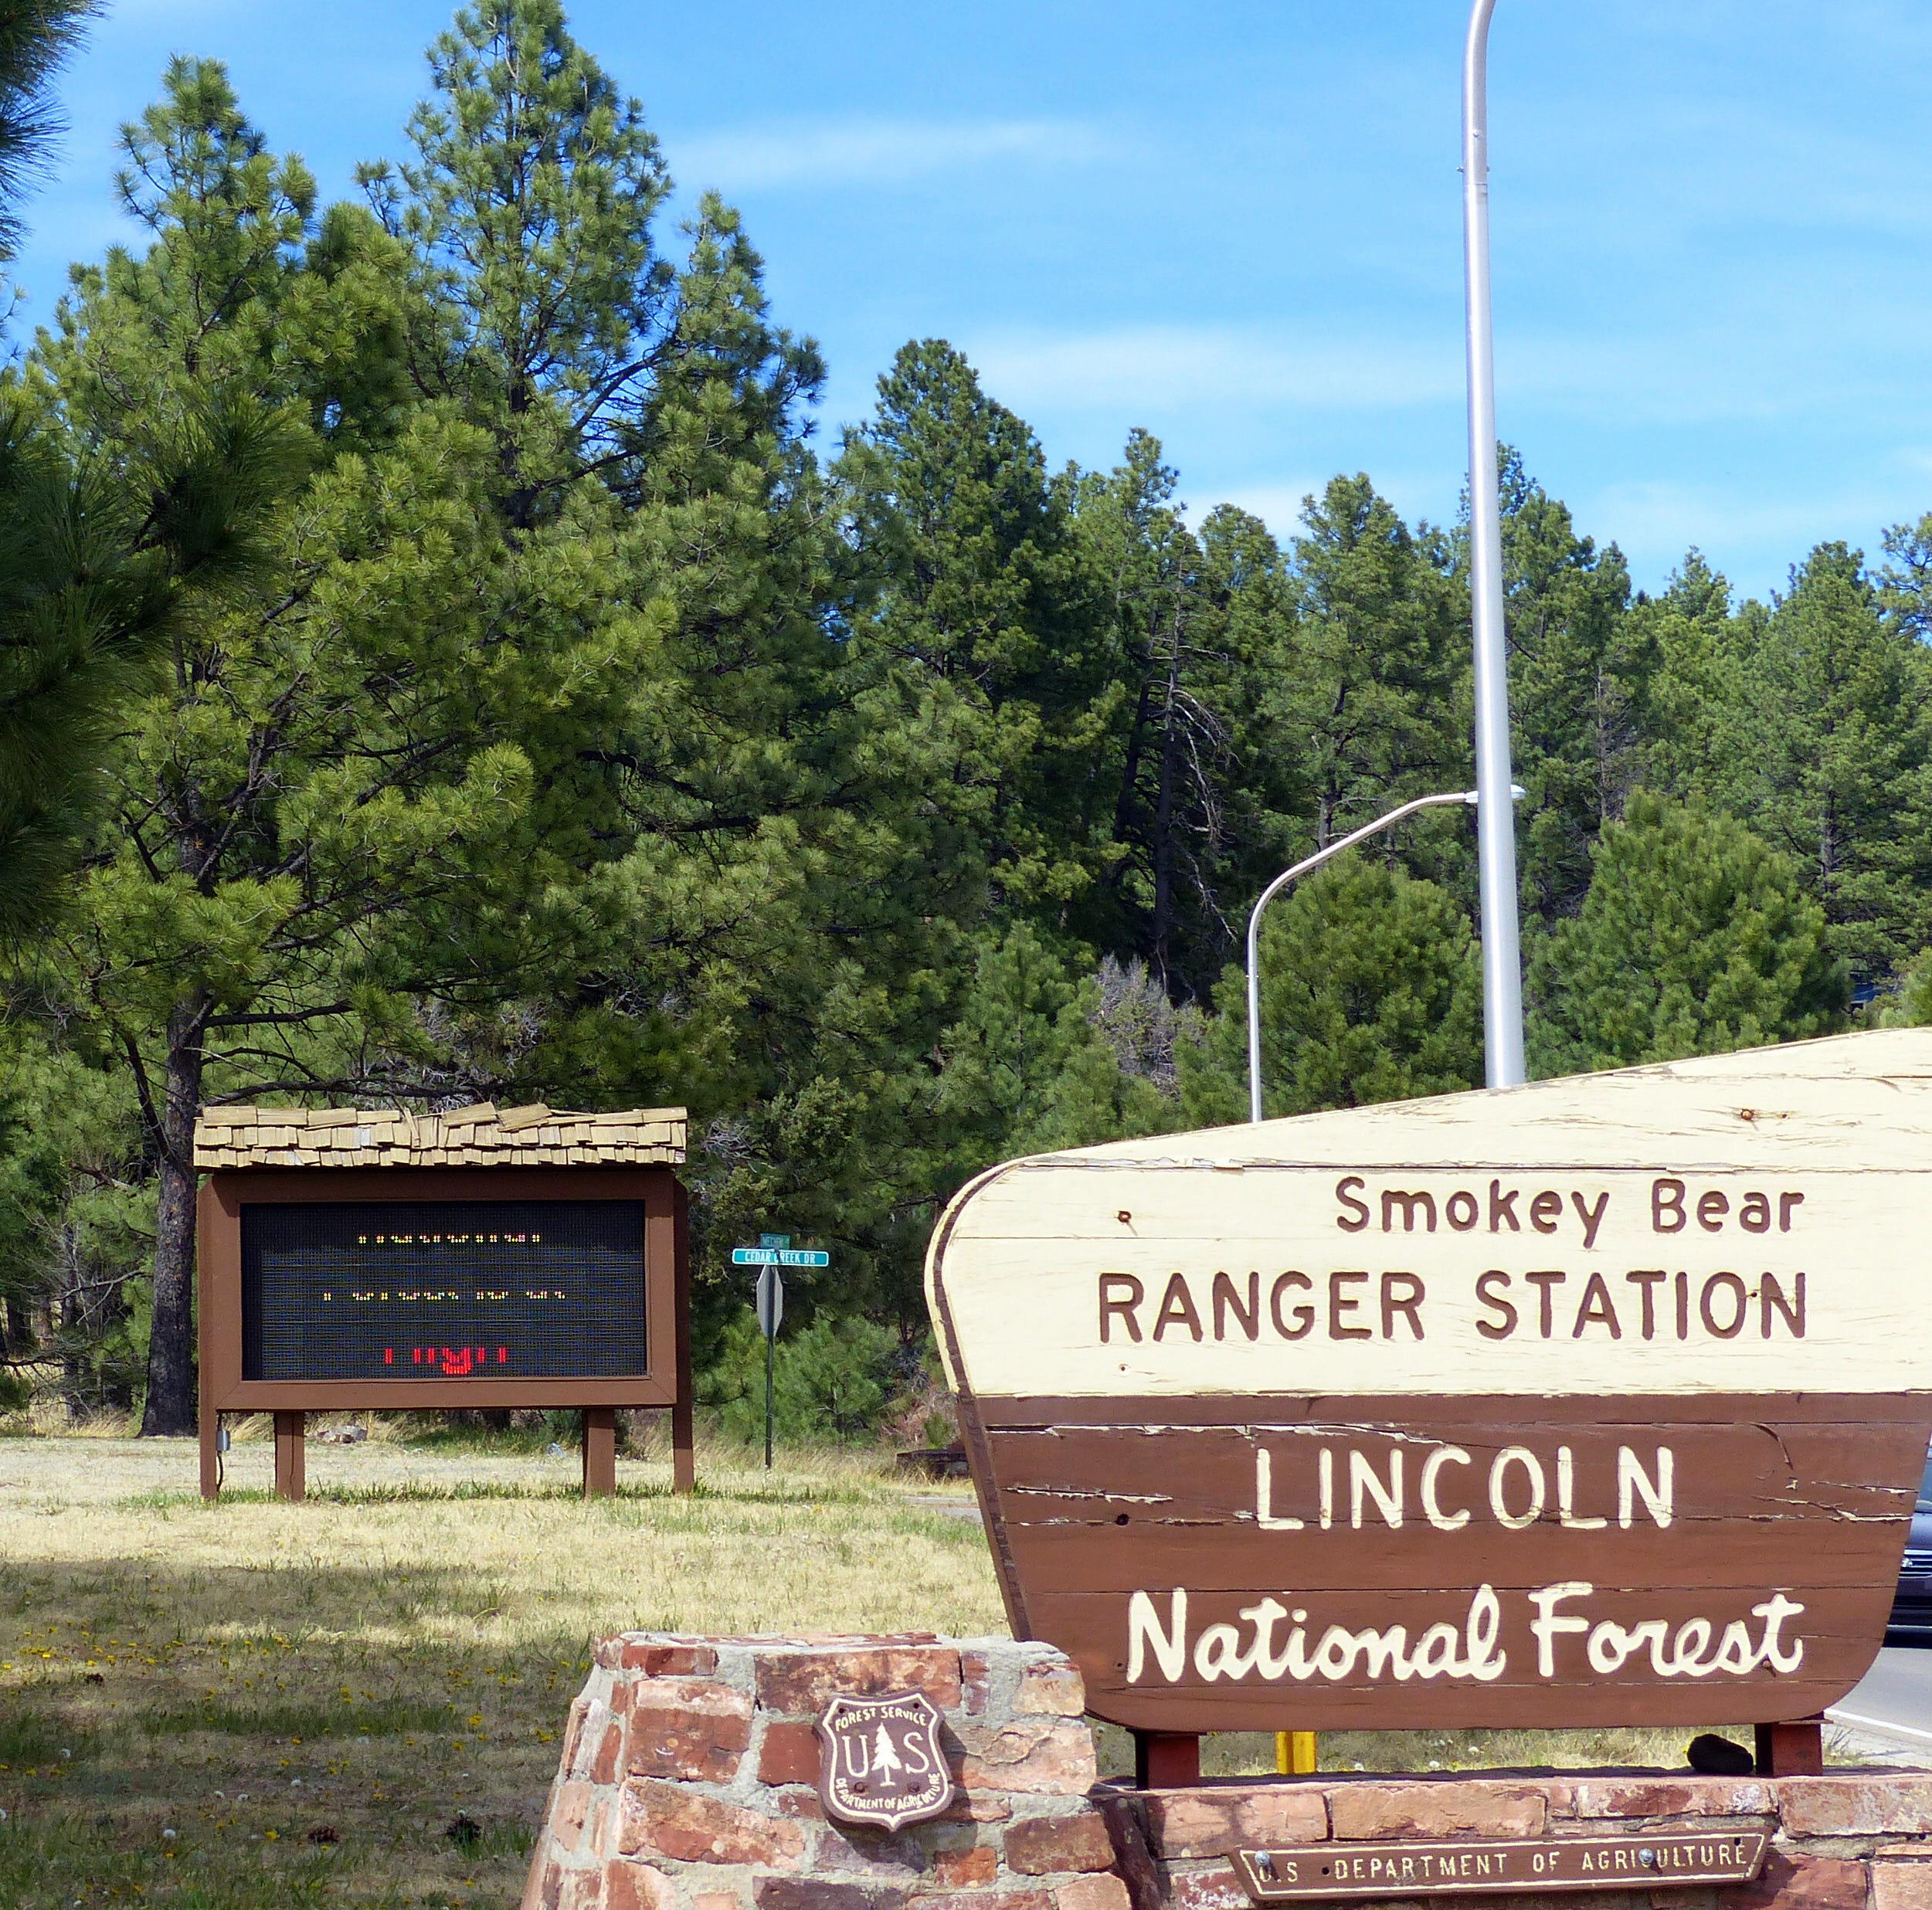 Camping sites open in Lincoln National Forest